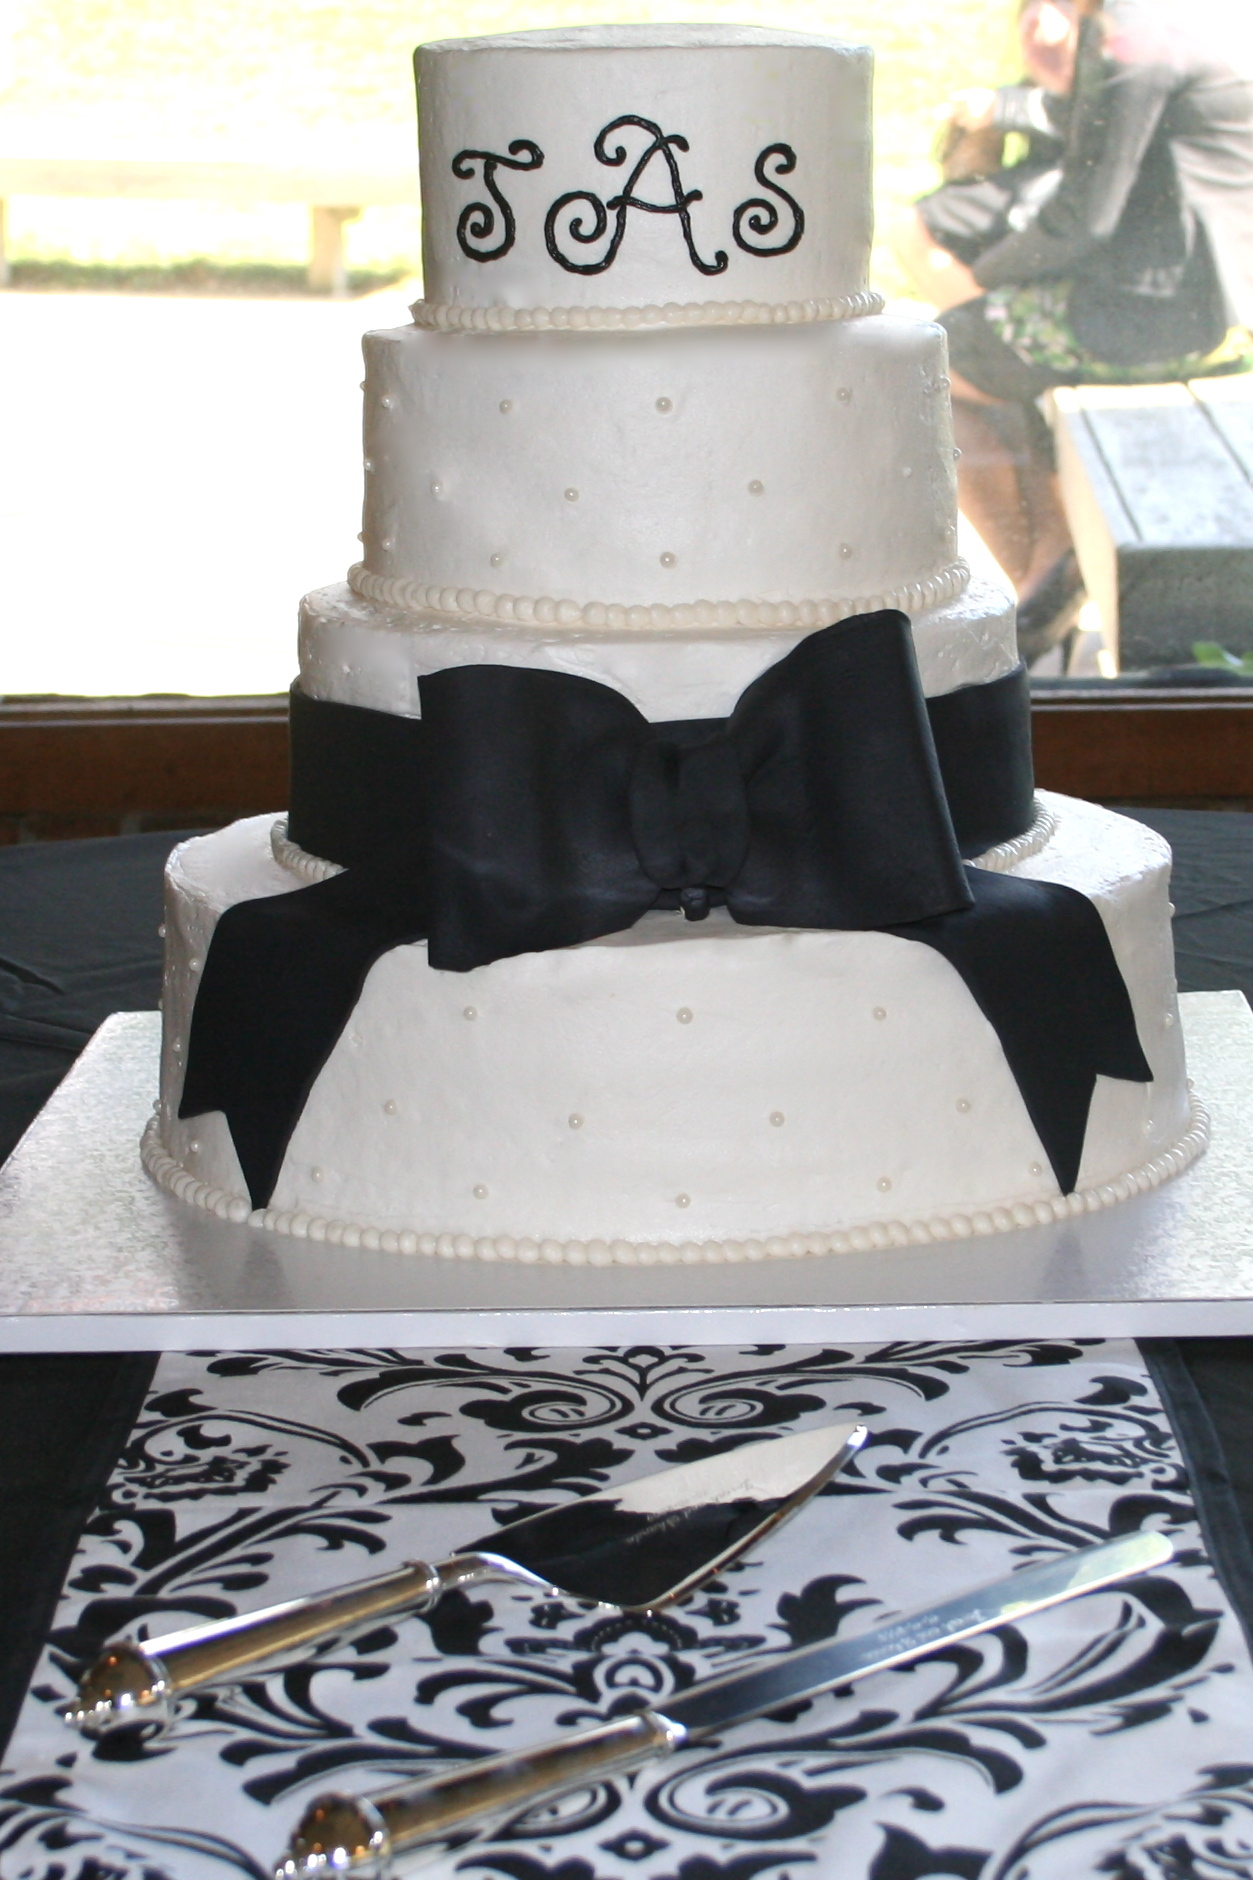 Cakes, white, black, cake, Monogrammed Wedding Cakes, Monogram, Wedding, Fondant, Buttercream, Simple, Bow, Dots, Swiss, Beaded, Border, Plain, Bennys bakery